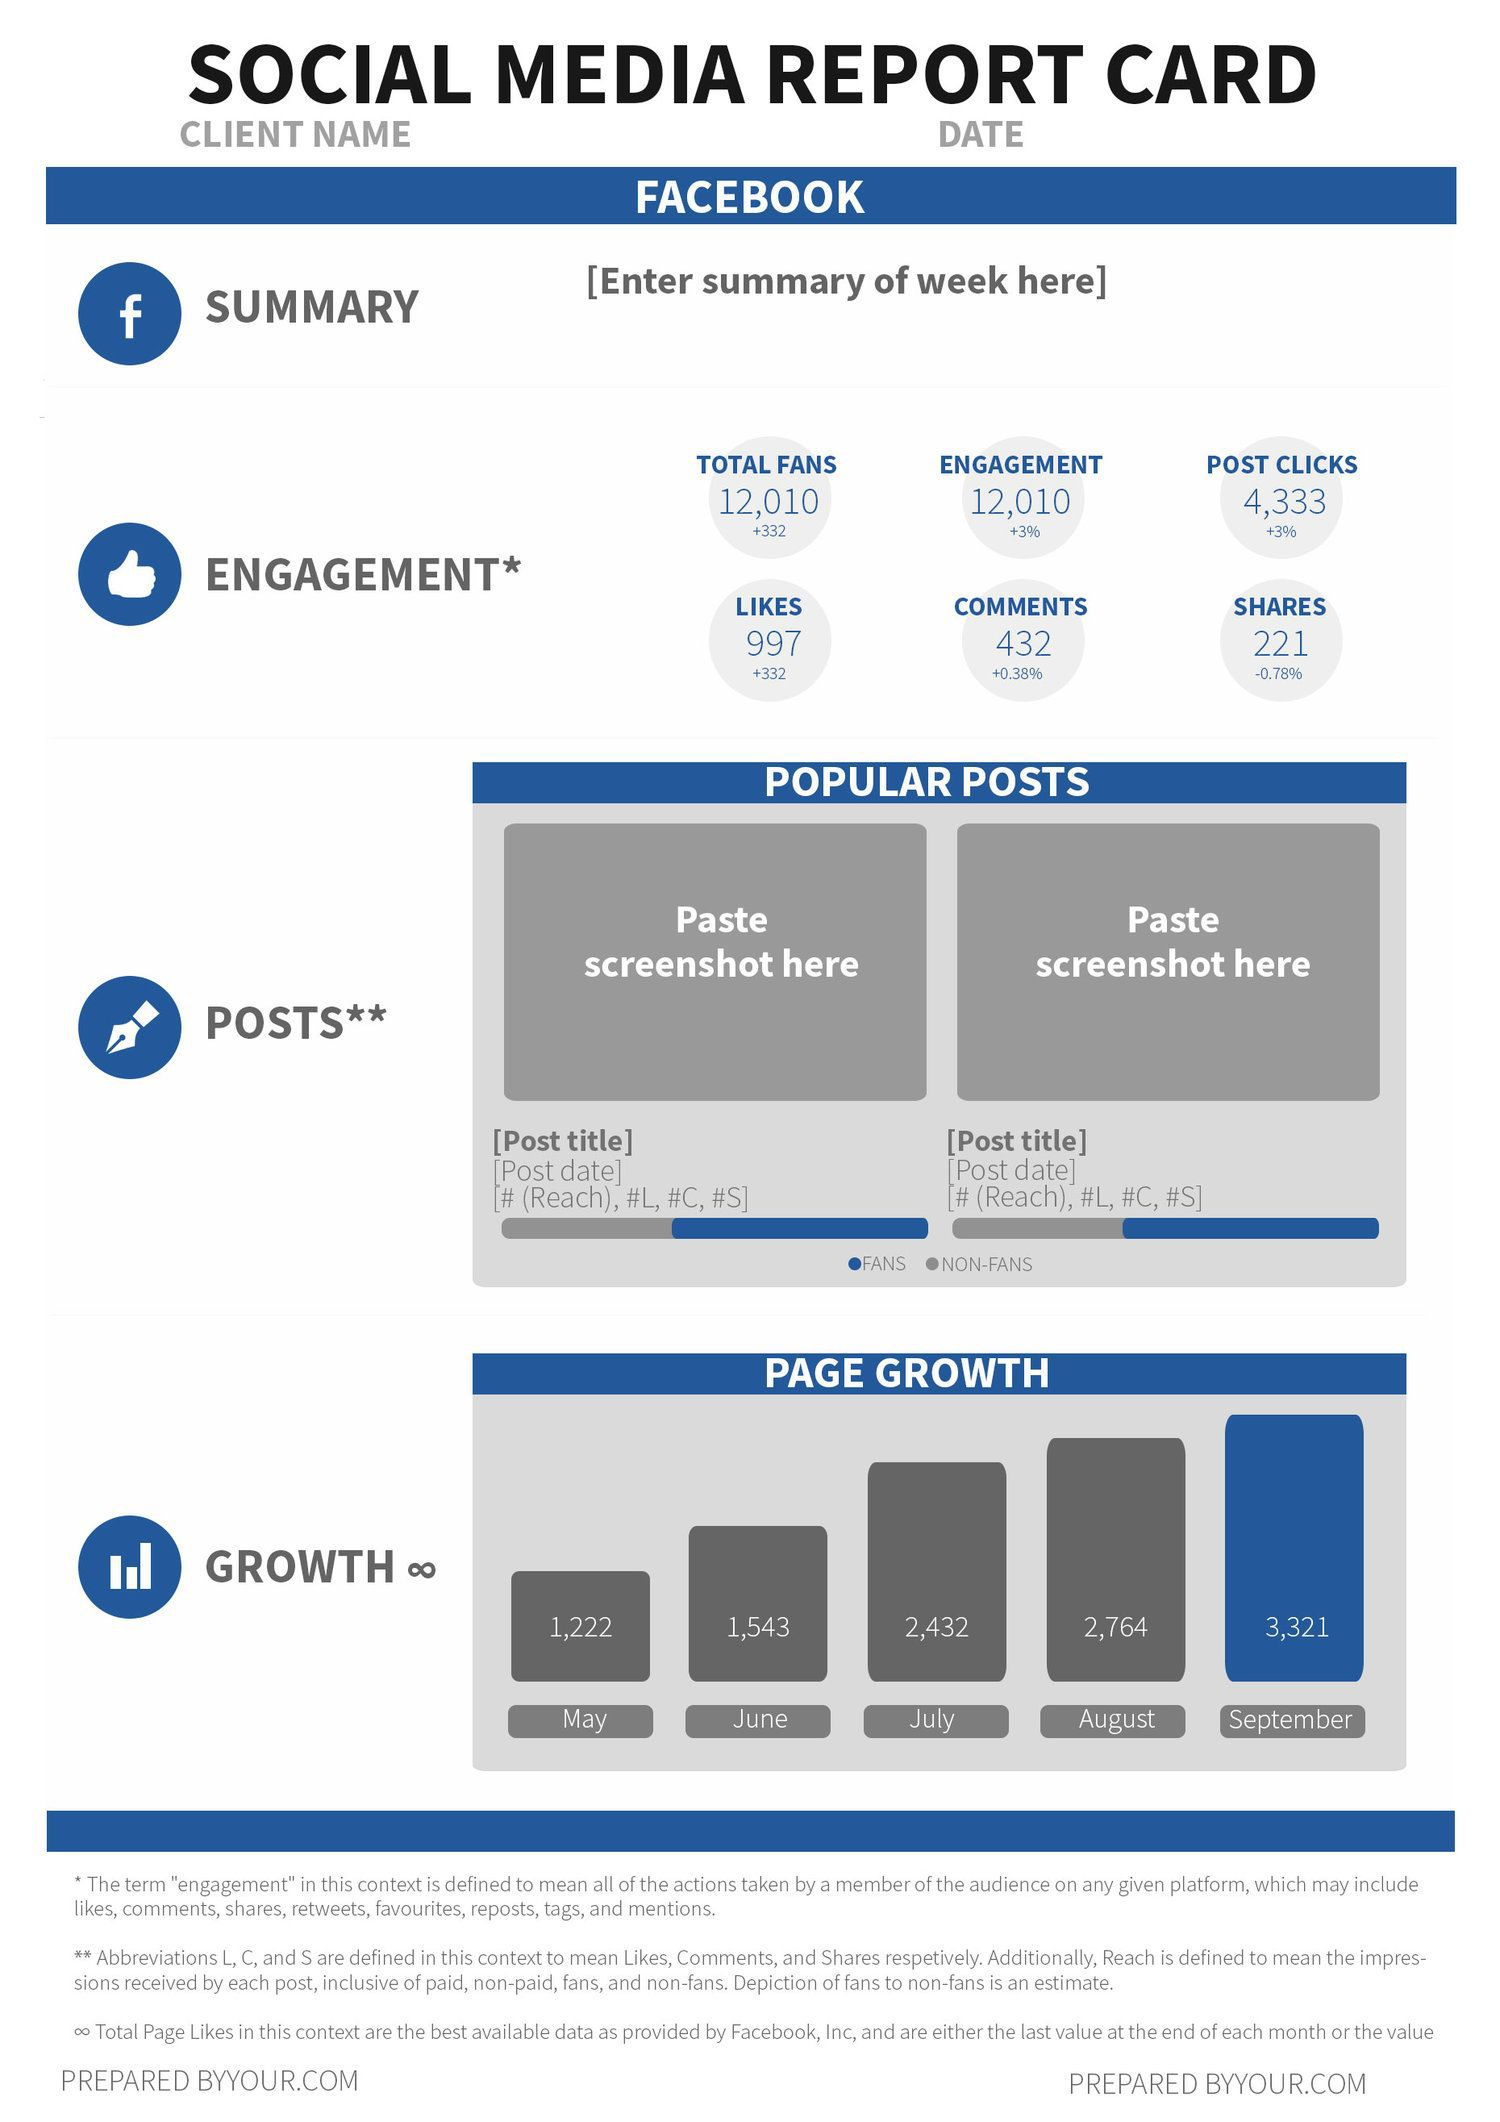 000 Astounding Social Media Report Template Sample  Powerpoint Free Download Analytic WordFull